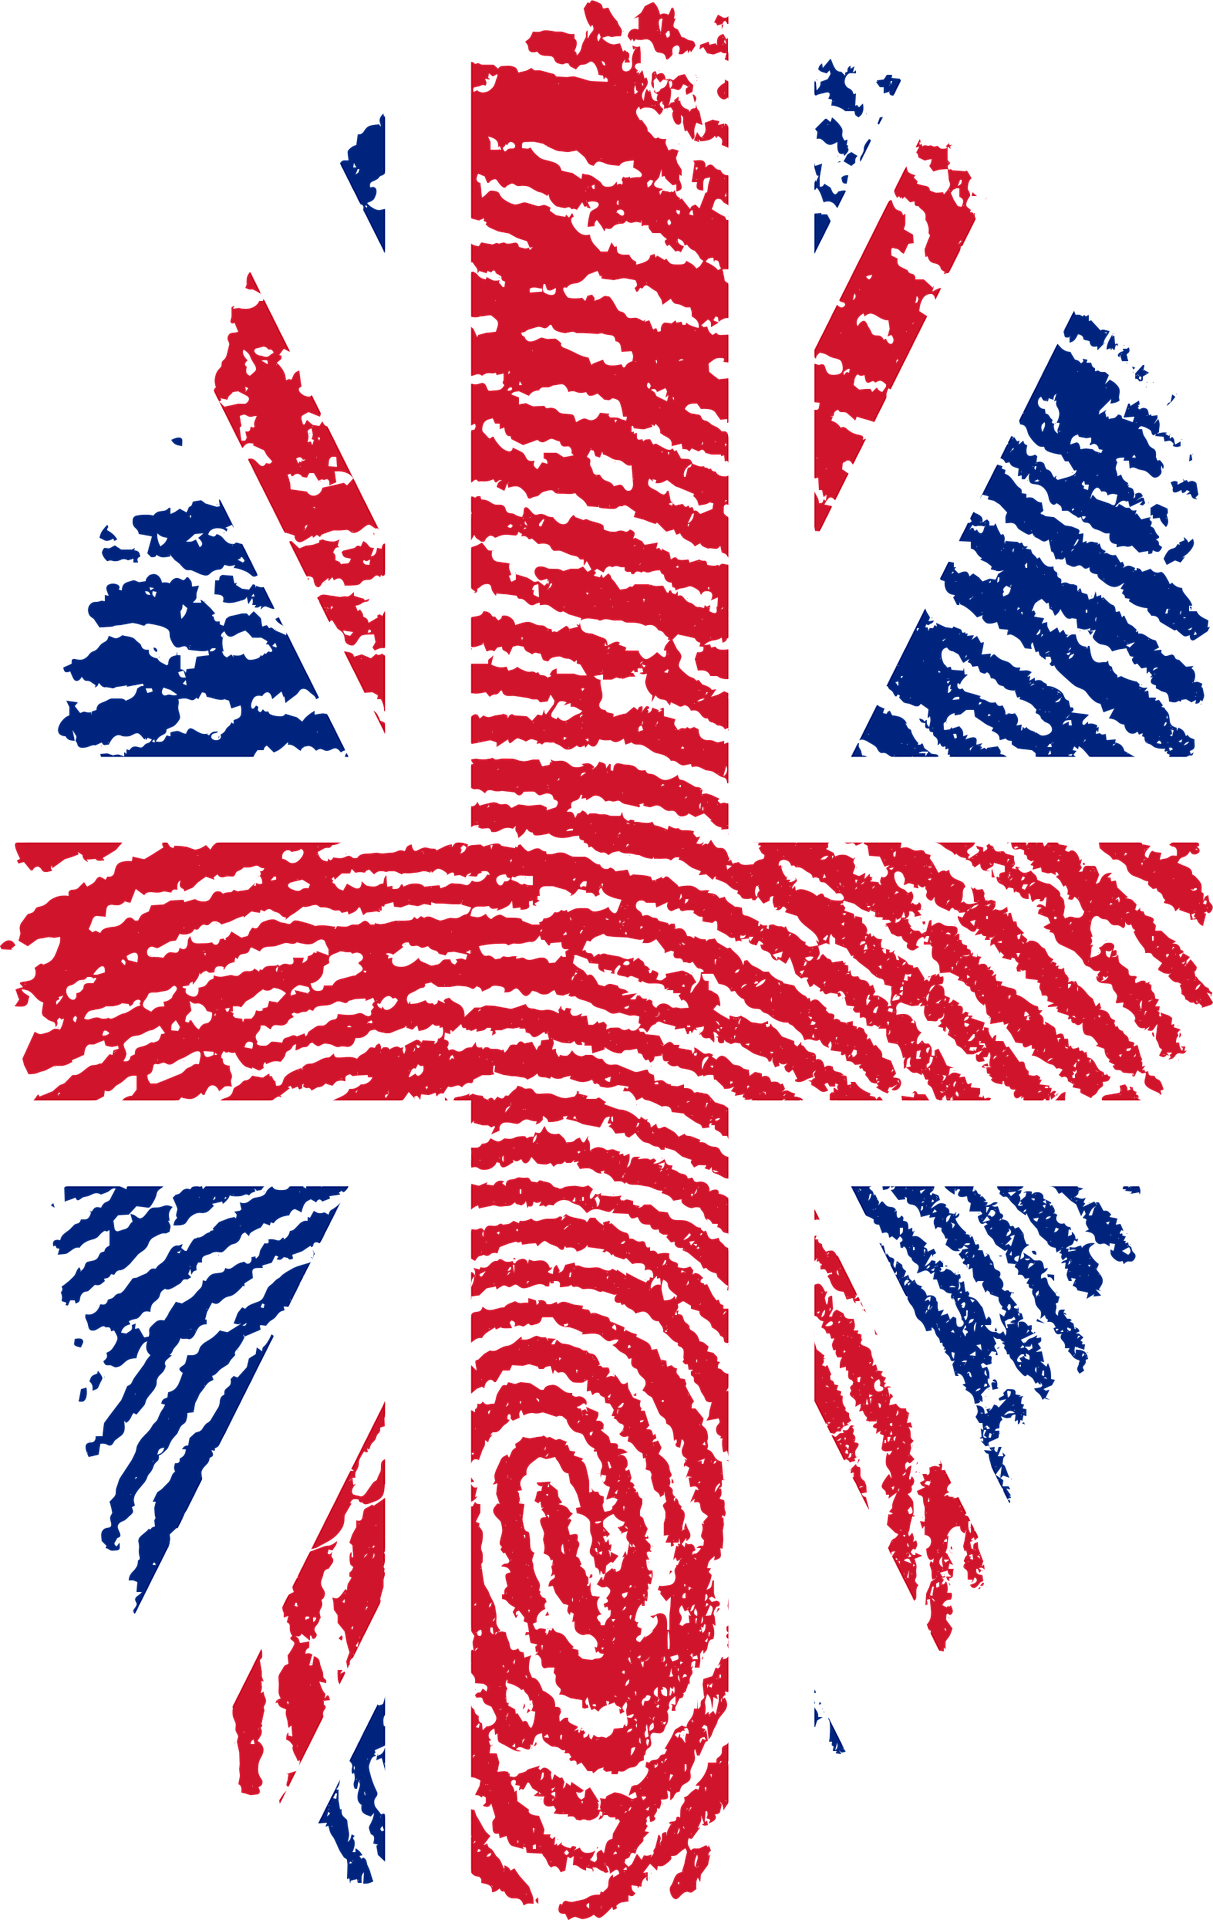 How to enter UK on a visa